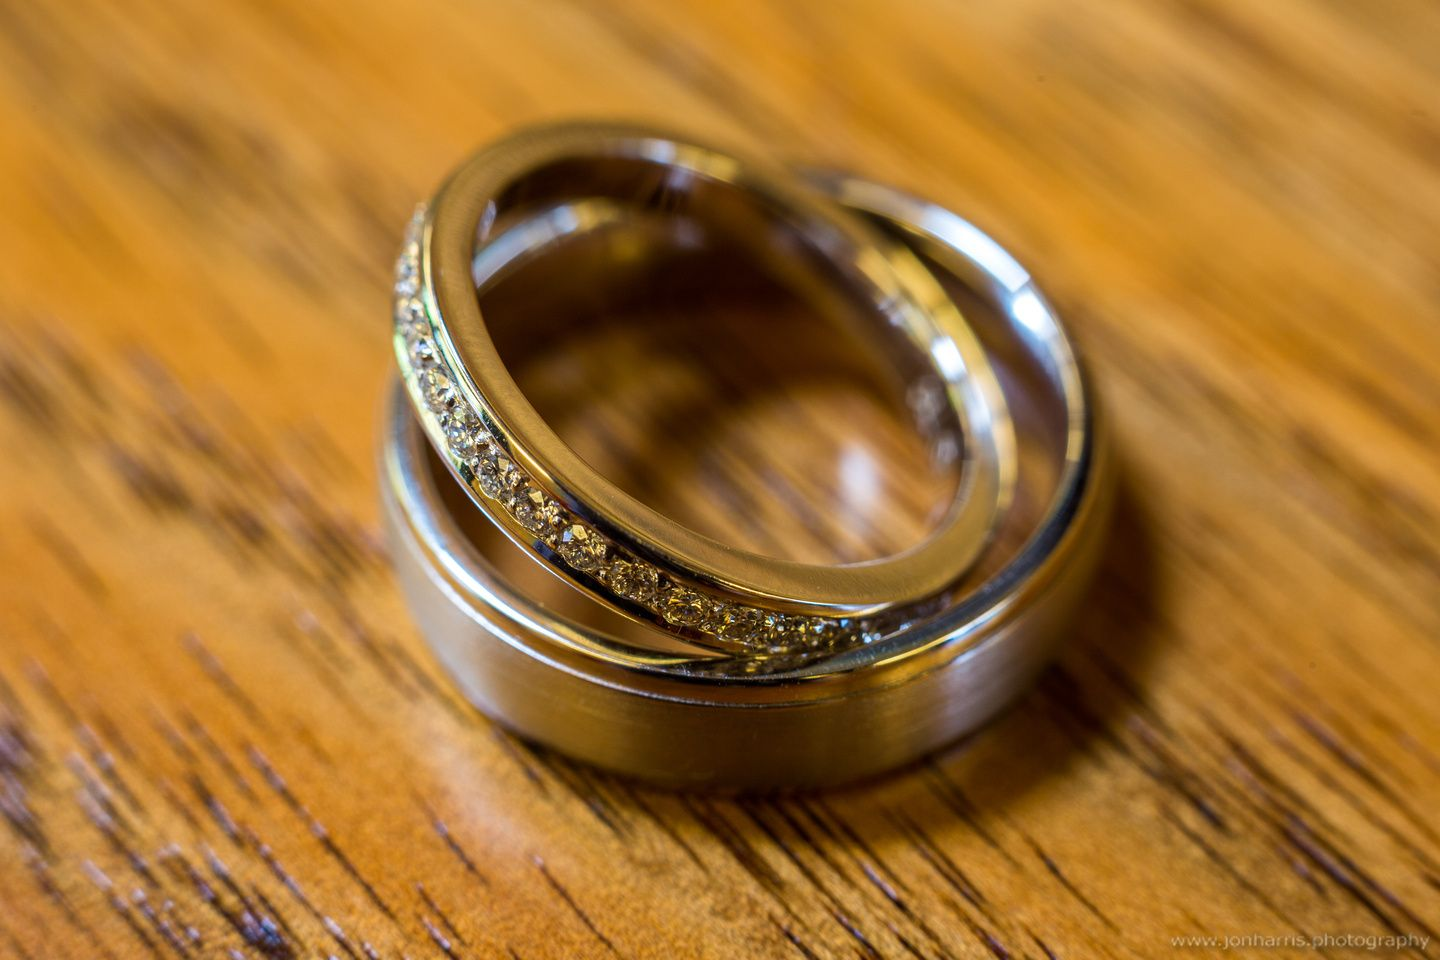 These wedding rings are pretty gorgeous! See more at www.jonharris.photography/weddings